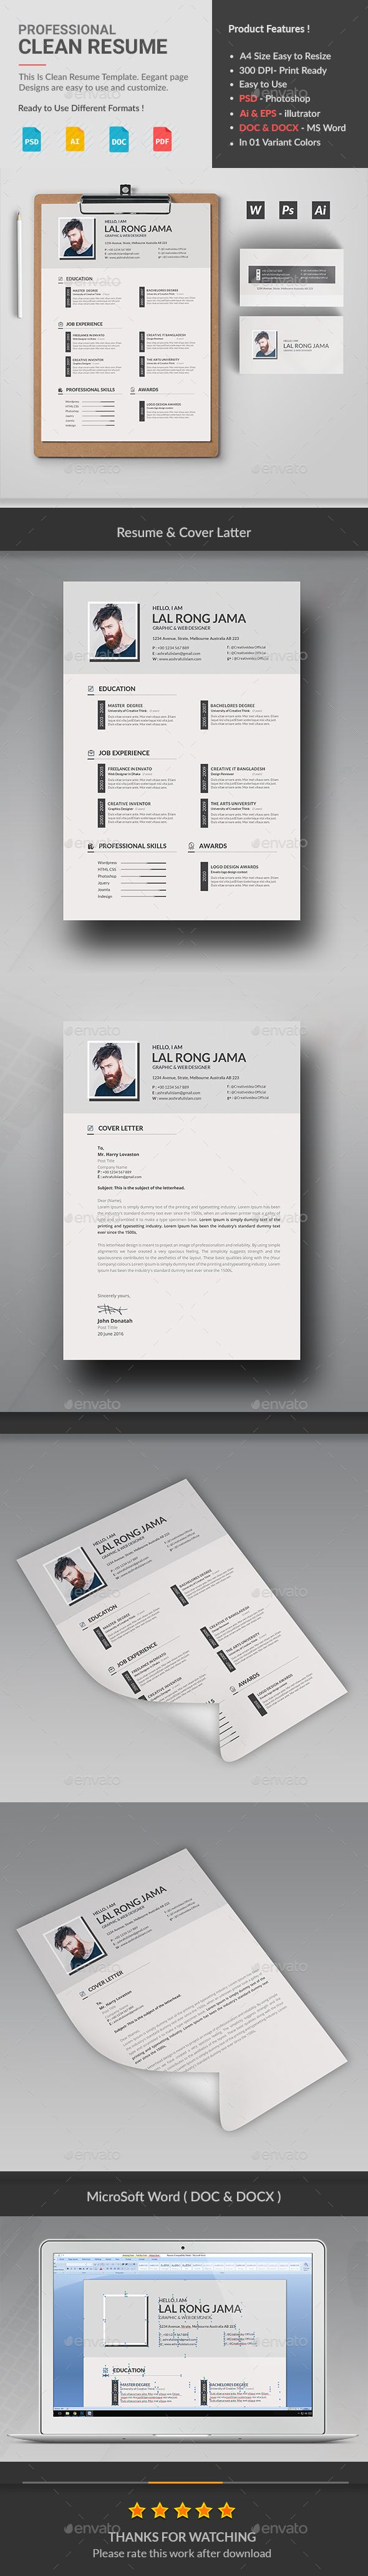 Cv Templates Design%0A  simple  clean  professional  Resume  Cv  template   modern Resumes